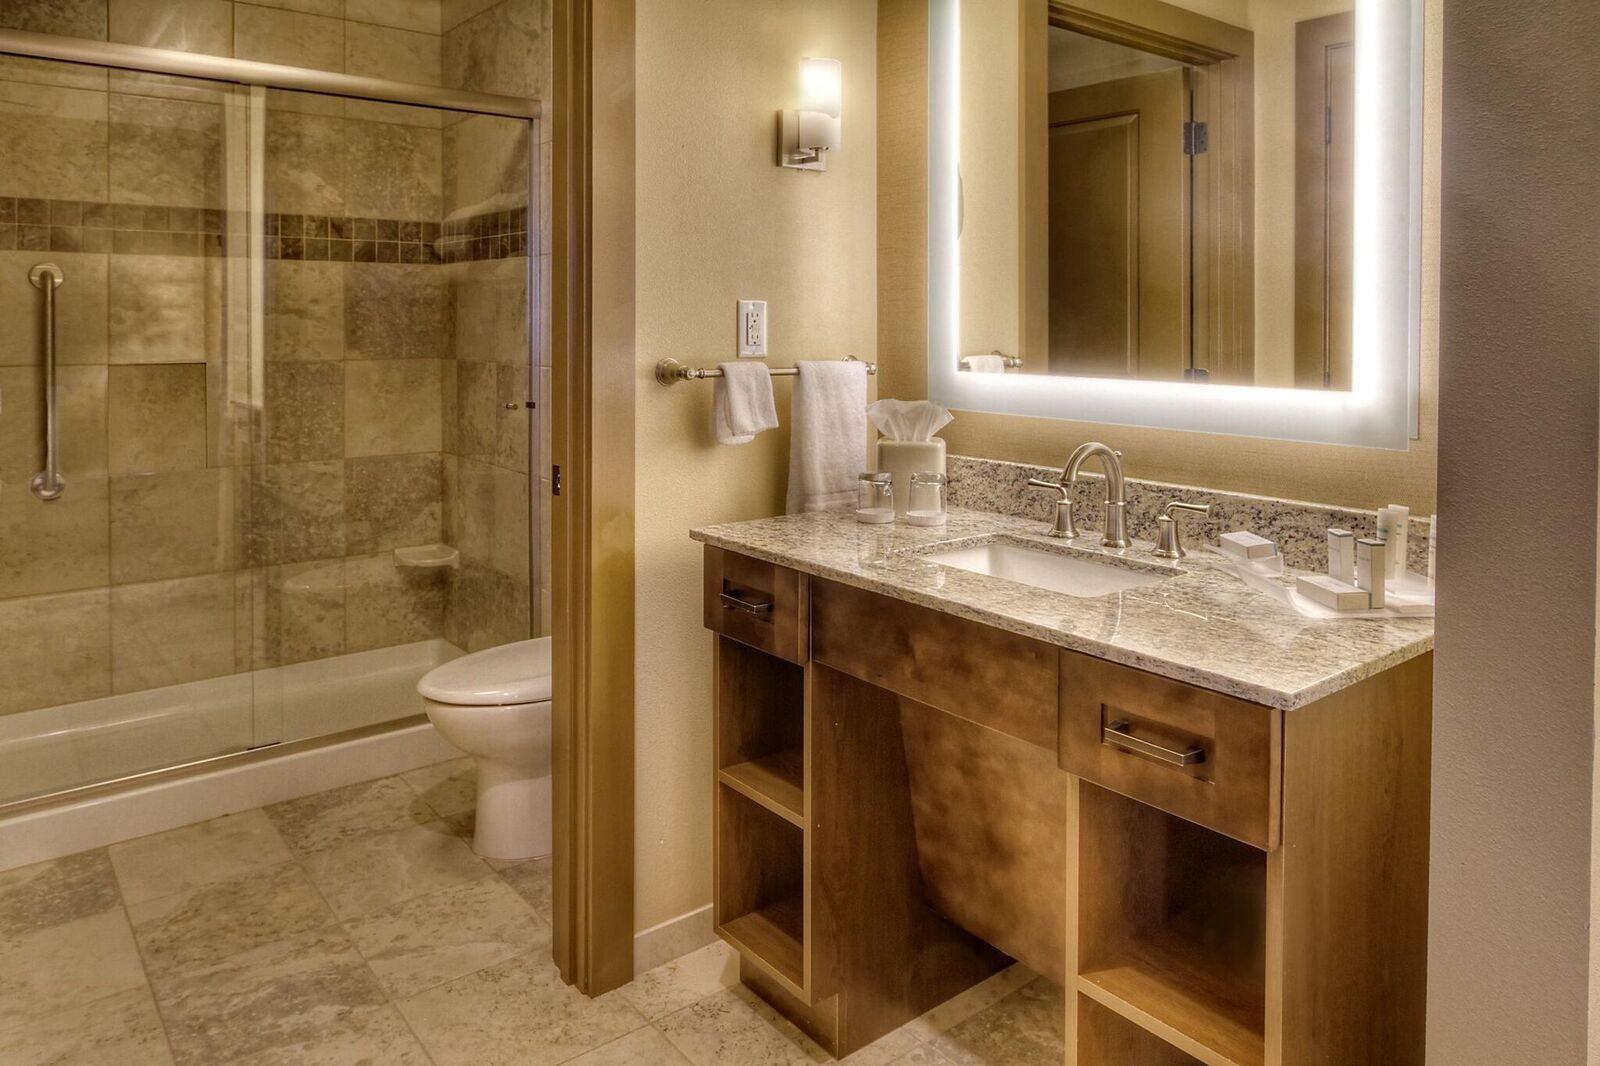 Hotel Bathroom from Erck Hotels